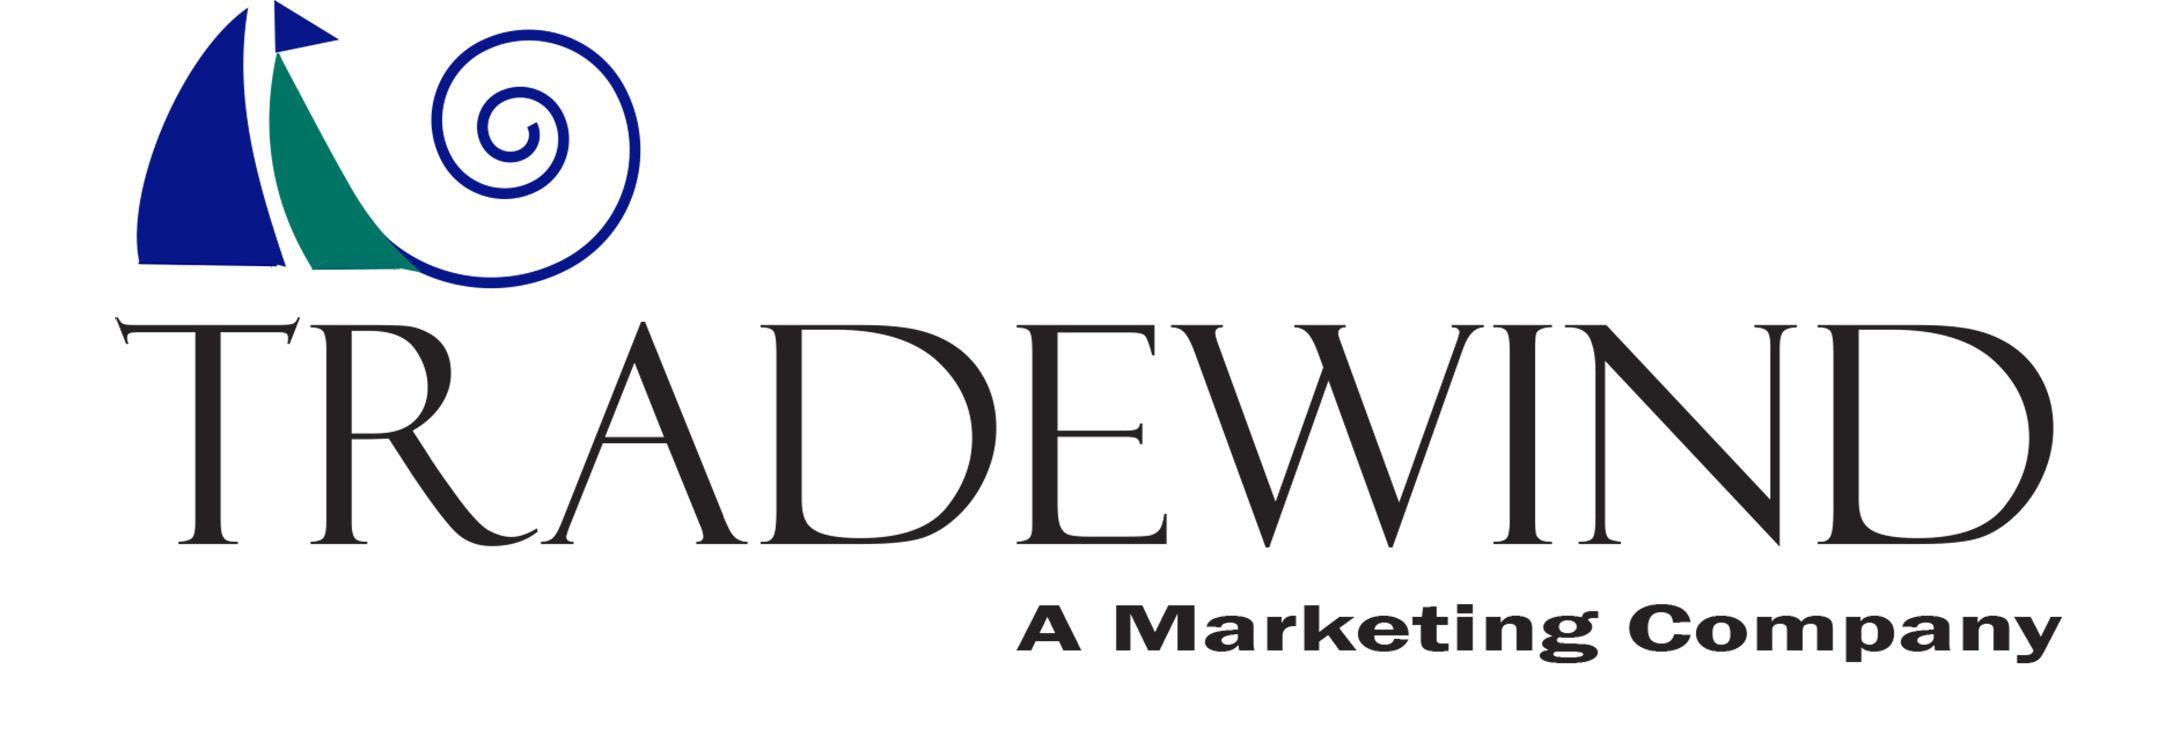 Tradewind Introduces Its New Name And Marketing Solutions Division